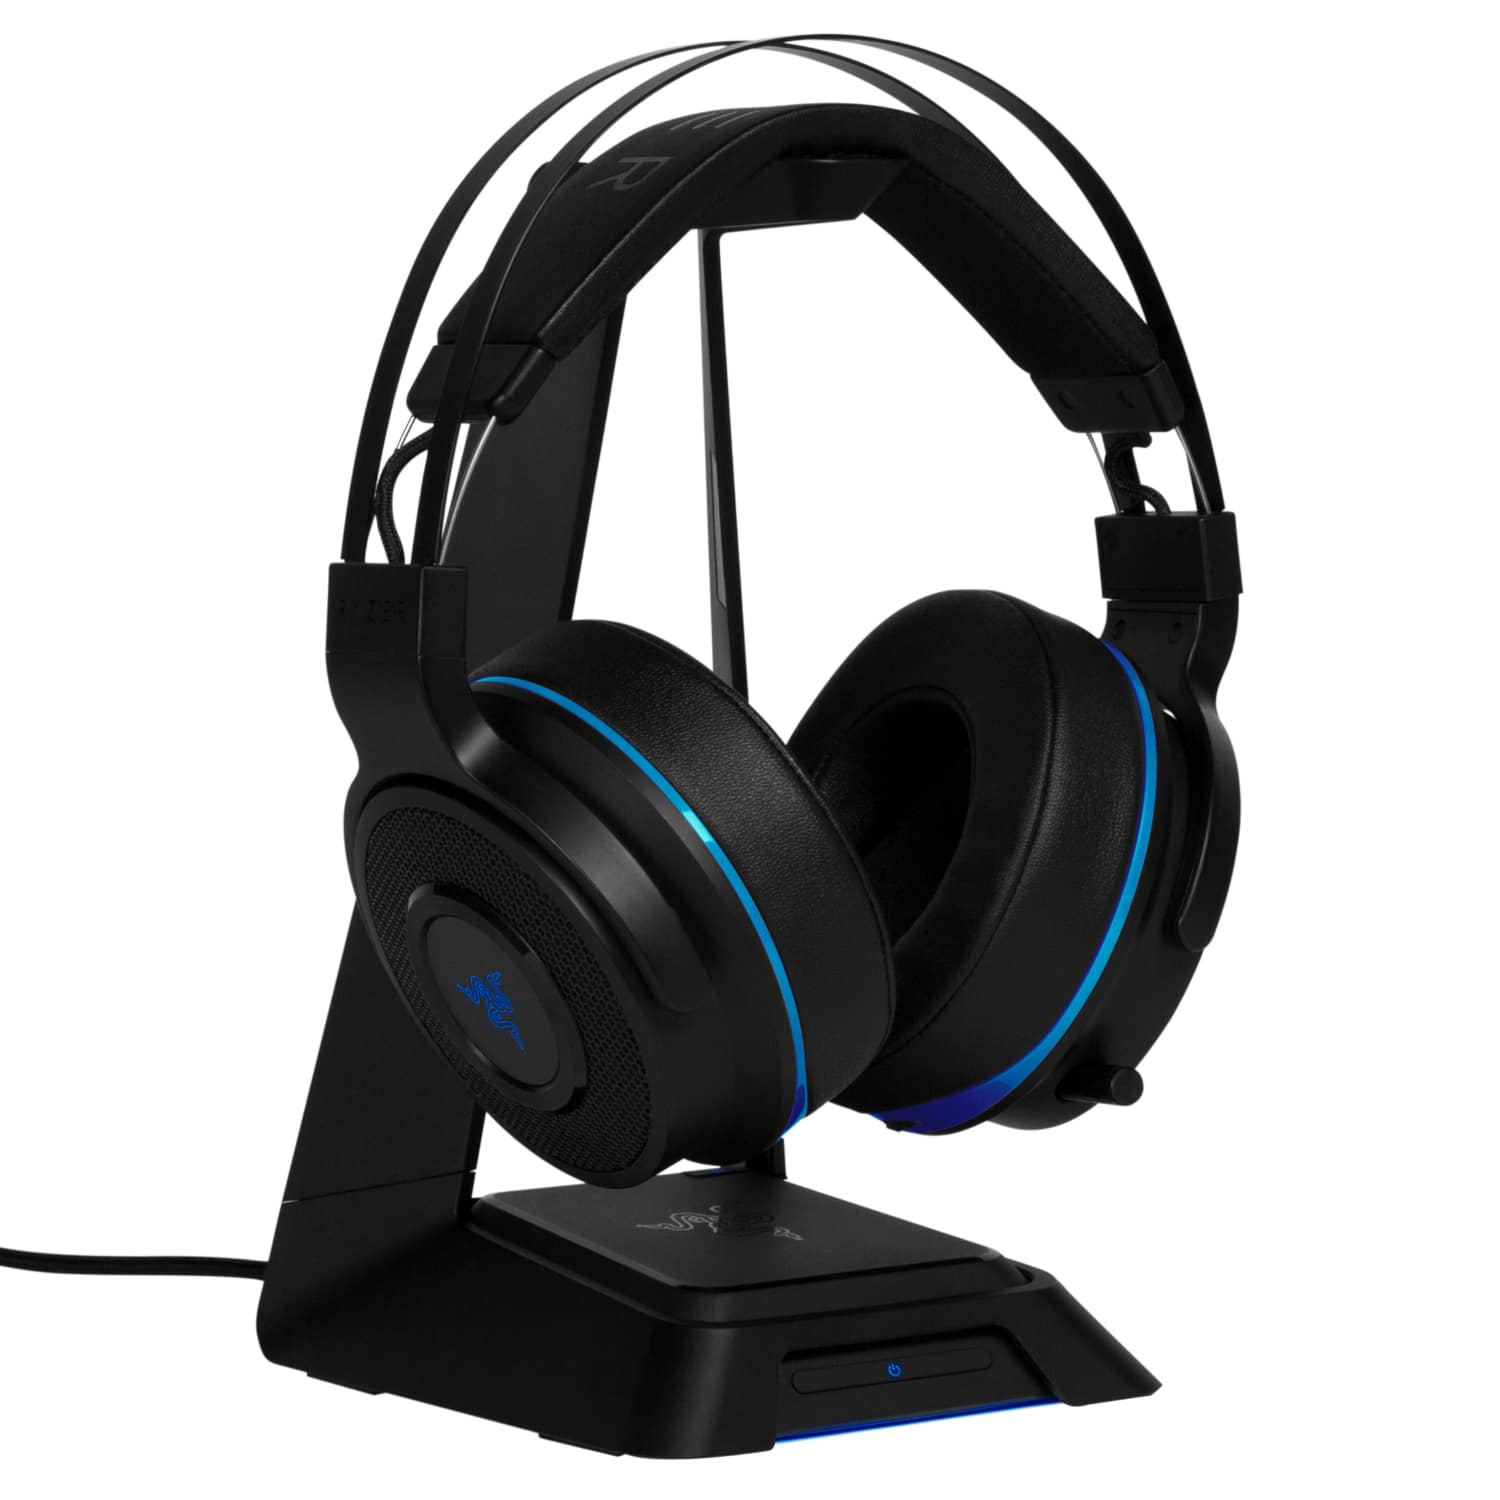 Razer RZ04-02230100-R3M1 Thresher 7.1 PS4 Headset für 149,00 Euro